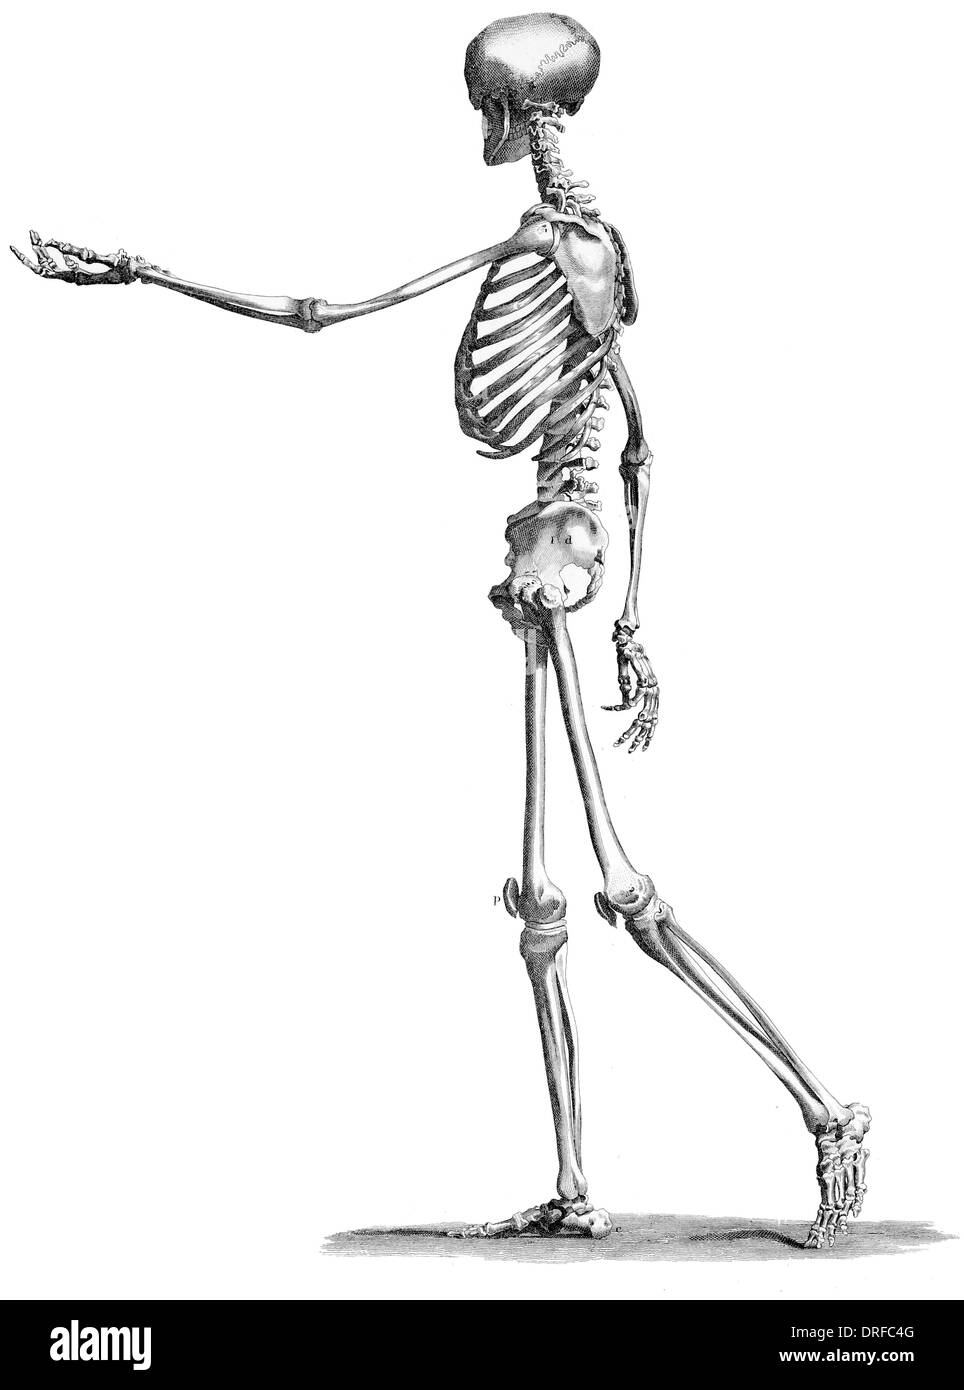 side view standing skeleton of human body - Stock Image